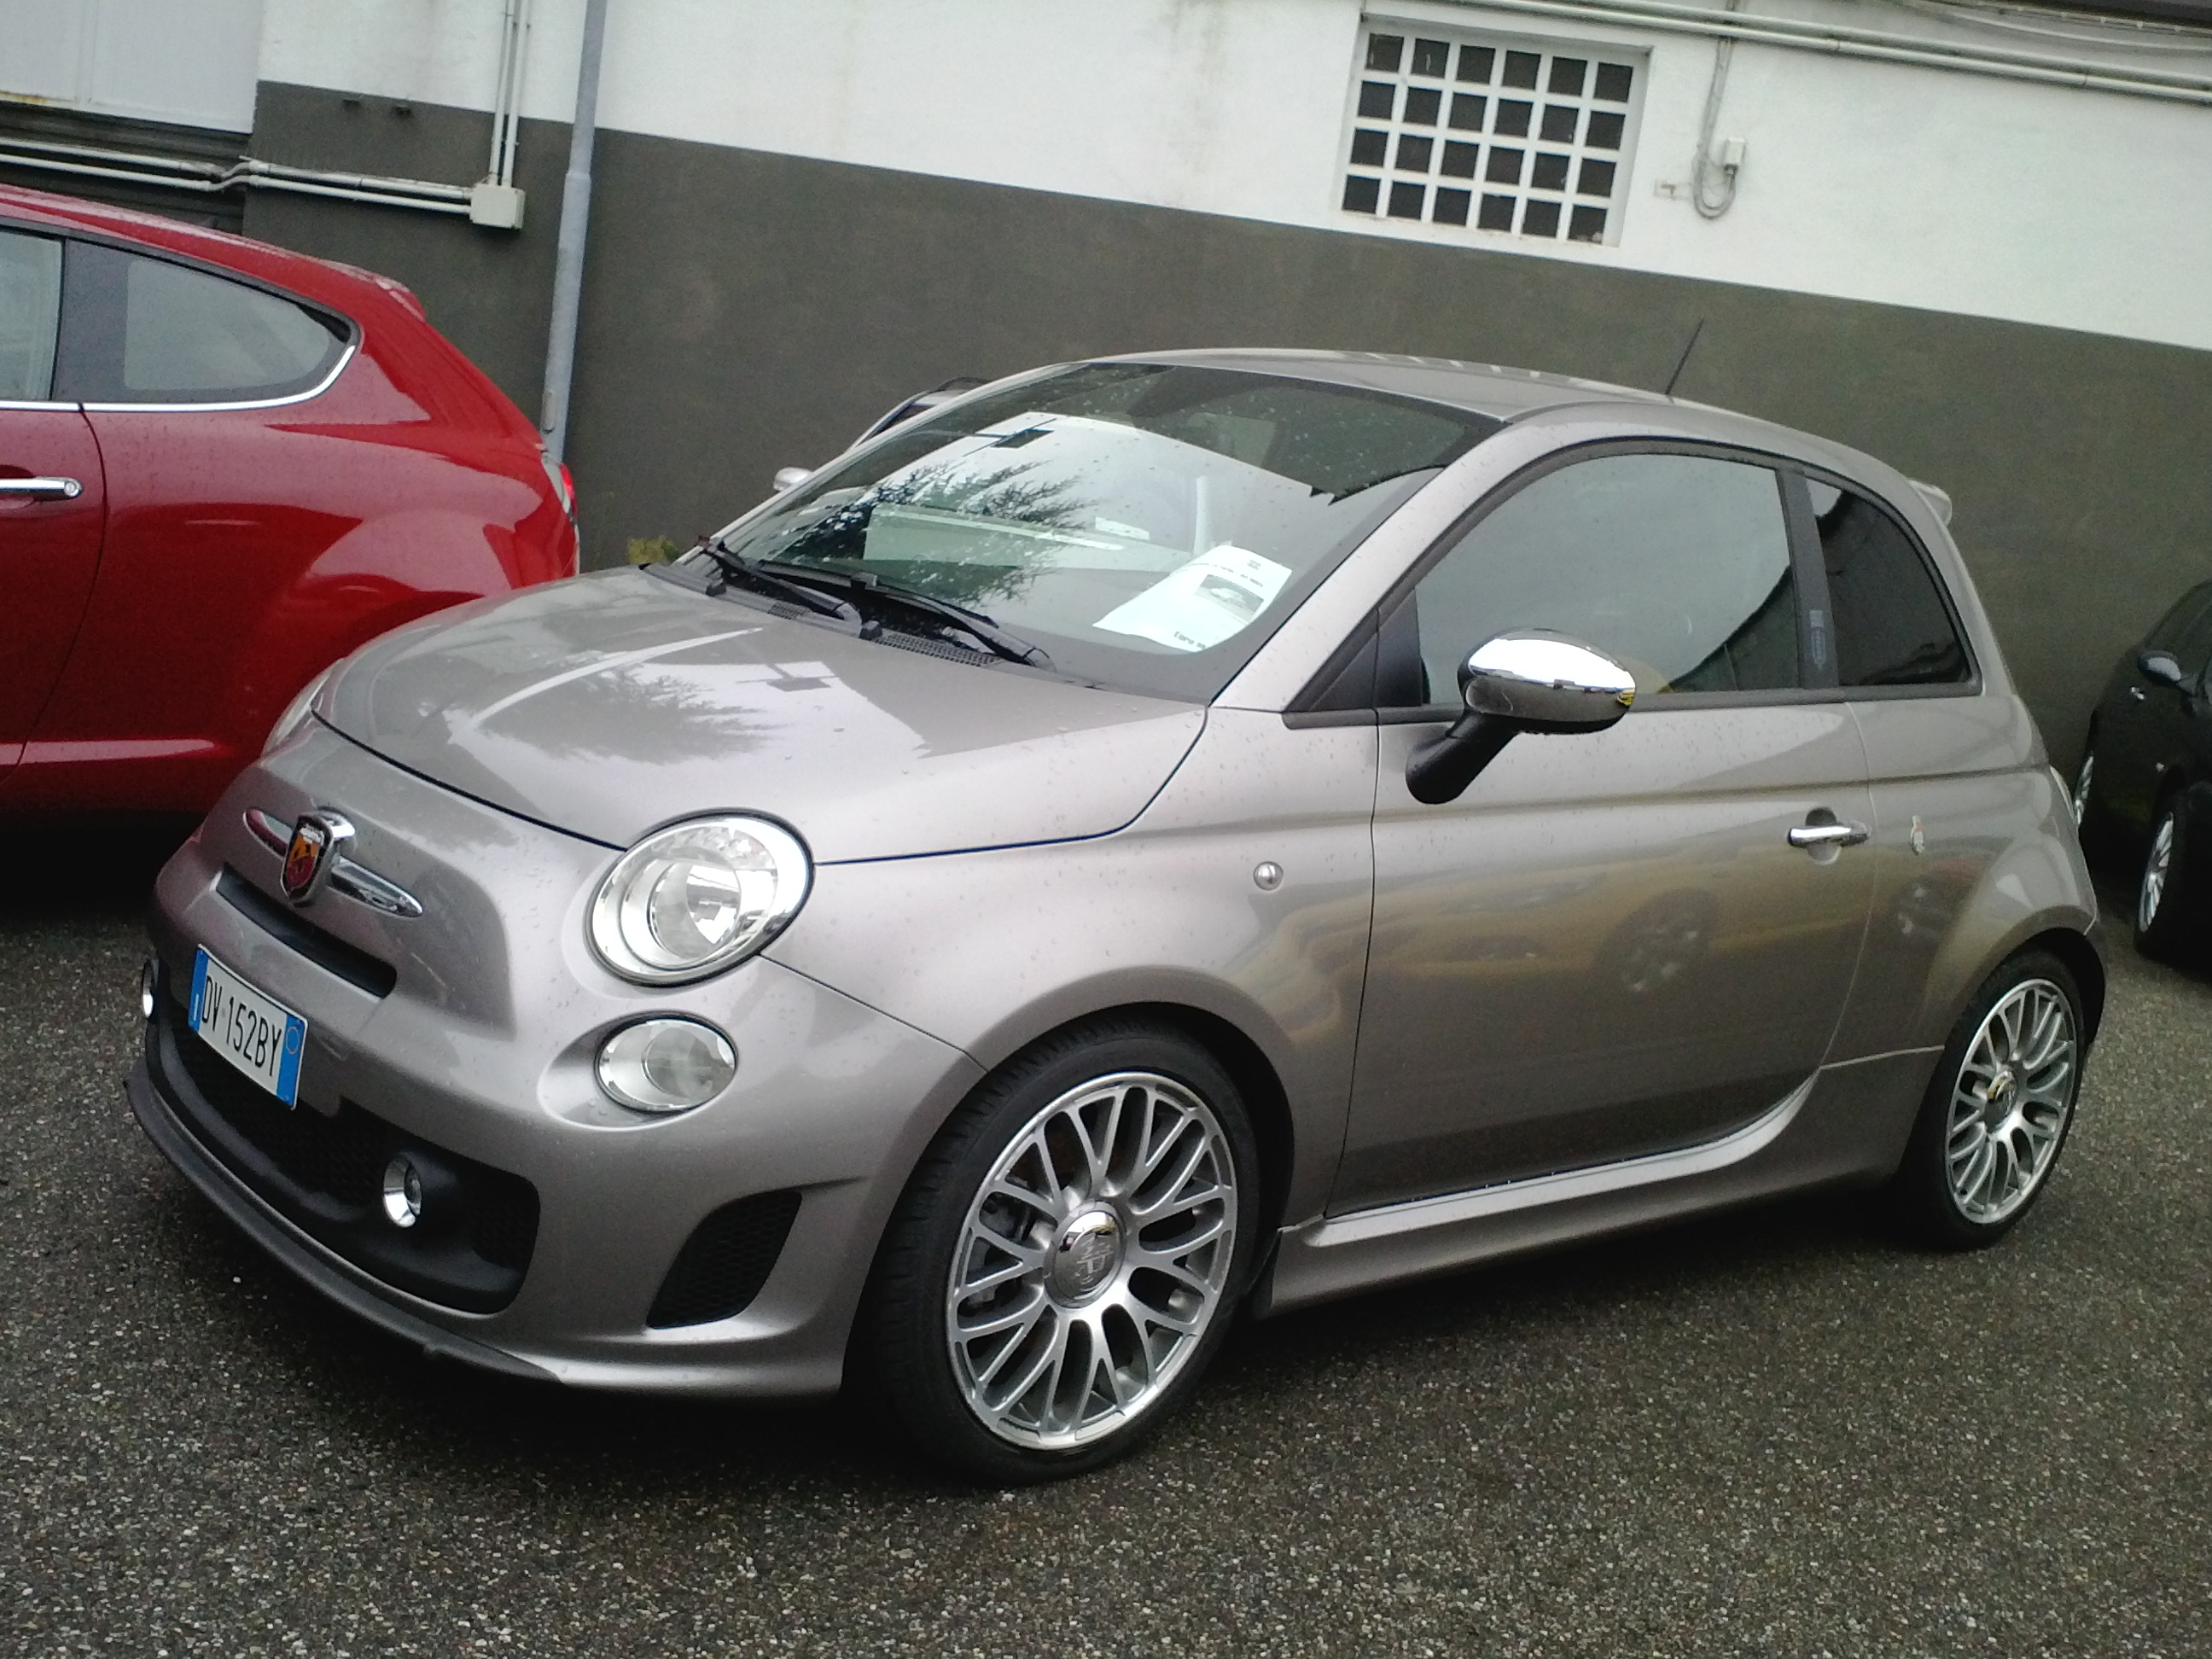 file abarth 500 wikimedia commons. Black Bedroom Furniture Sets. Home Design Ideas